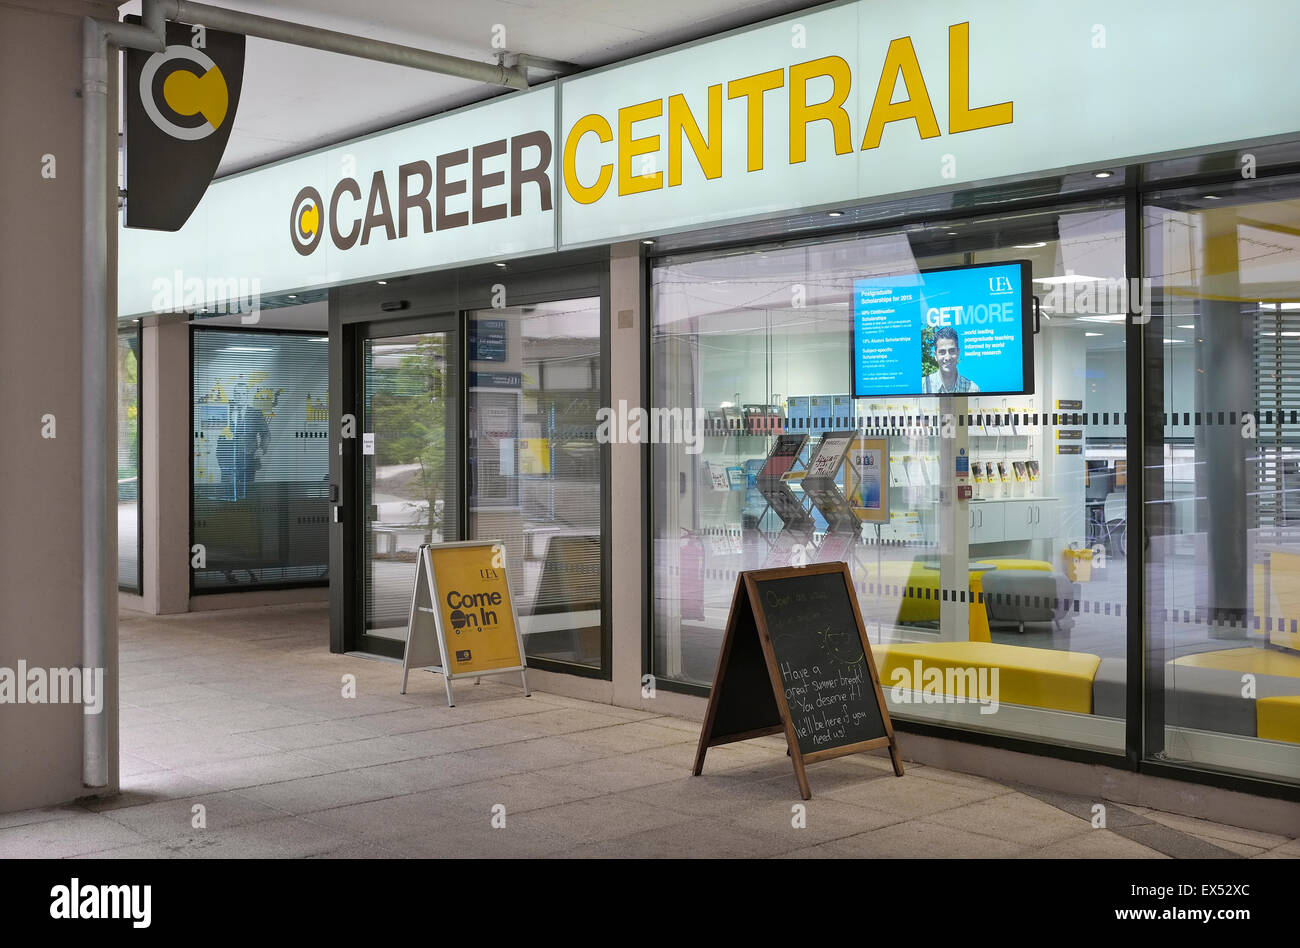 career central office, uea, norwich, norfolk, england Stock Photo